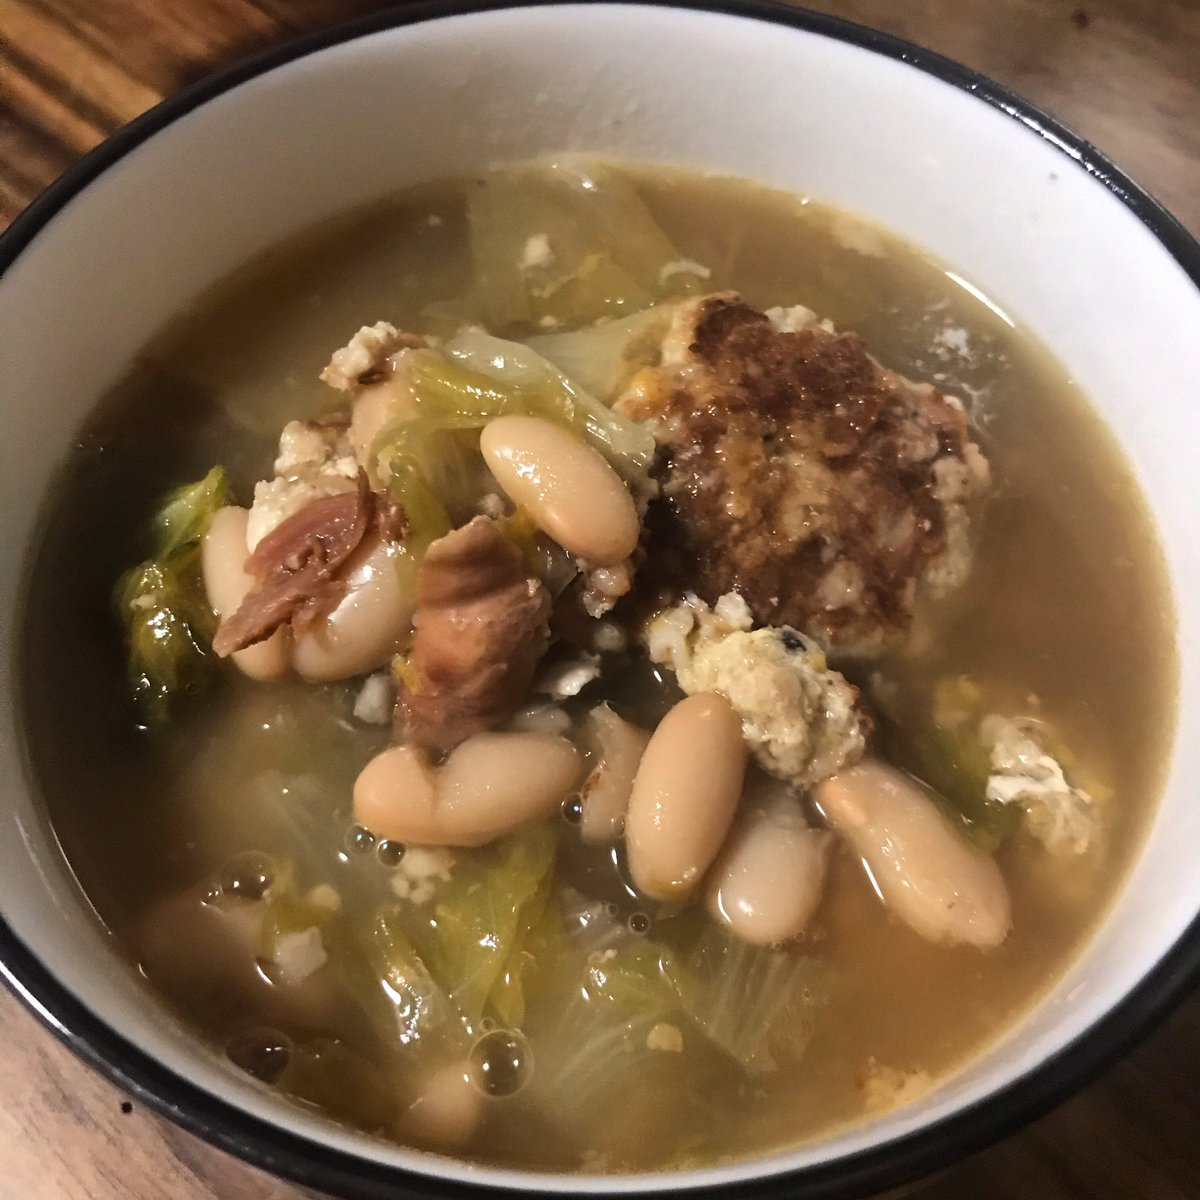 Turkey meatball, white bean & escarole soup - recipe from @ww.  Warm & hearty, perfect for a cold winter night. I added garlic to meatballs & used leftover turkey meat and turkey stock in lieu of chicken #thanksgivingleftovers #BBTBWeightlossJourney #glutenfree #wwlife #teamgreen https://t.co/I5sBSEli25